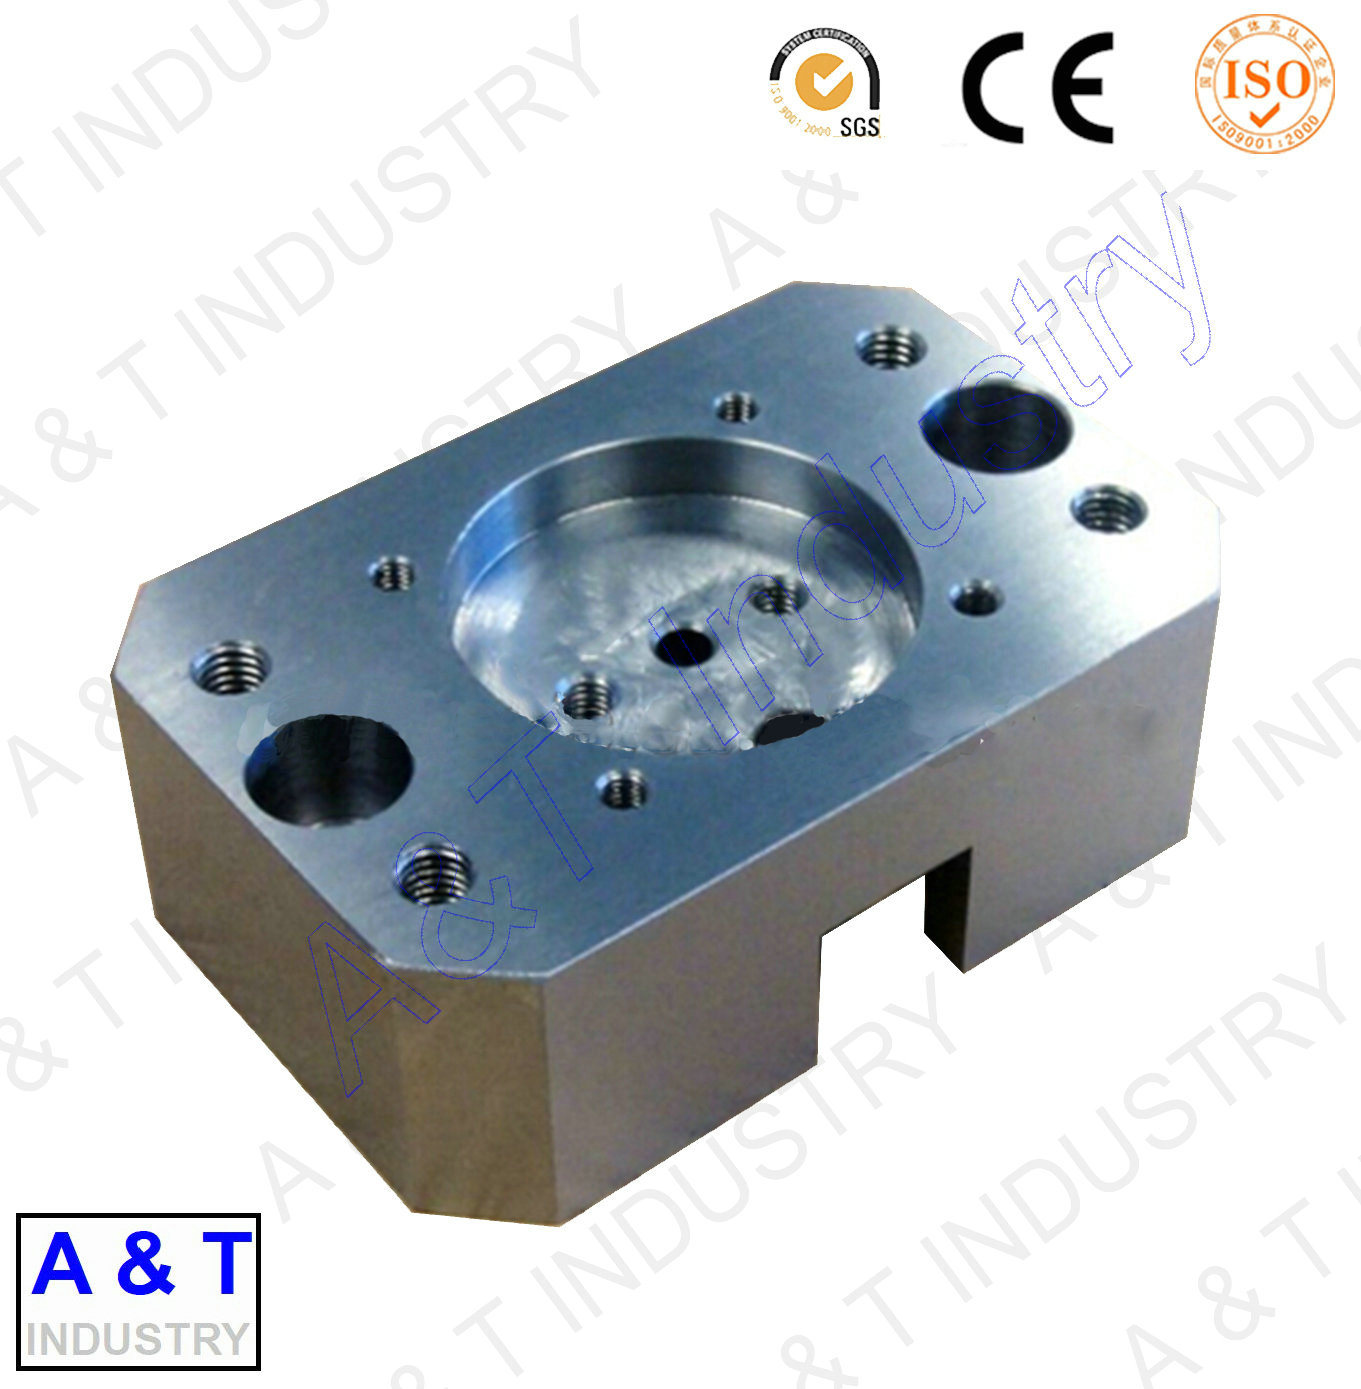 CNC Customized Aluminum/Brass/Stainless Steel/ Lathe Machine Part Turning Parts